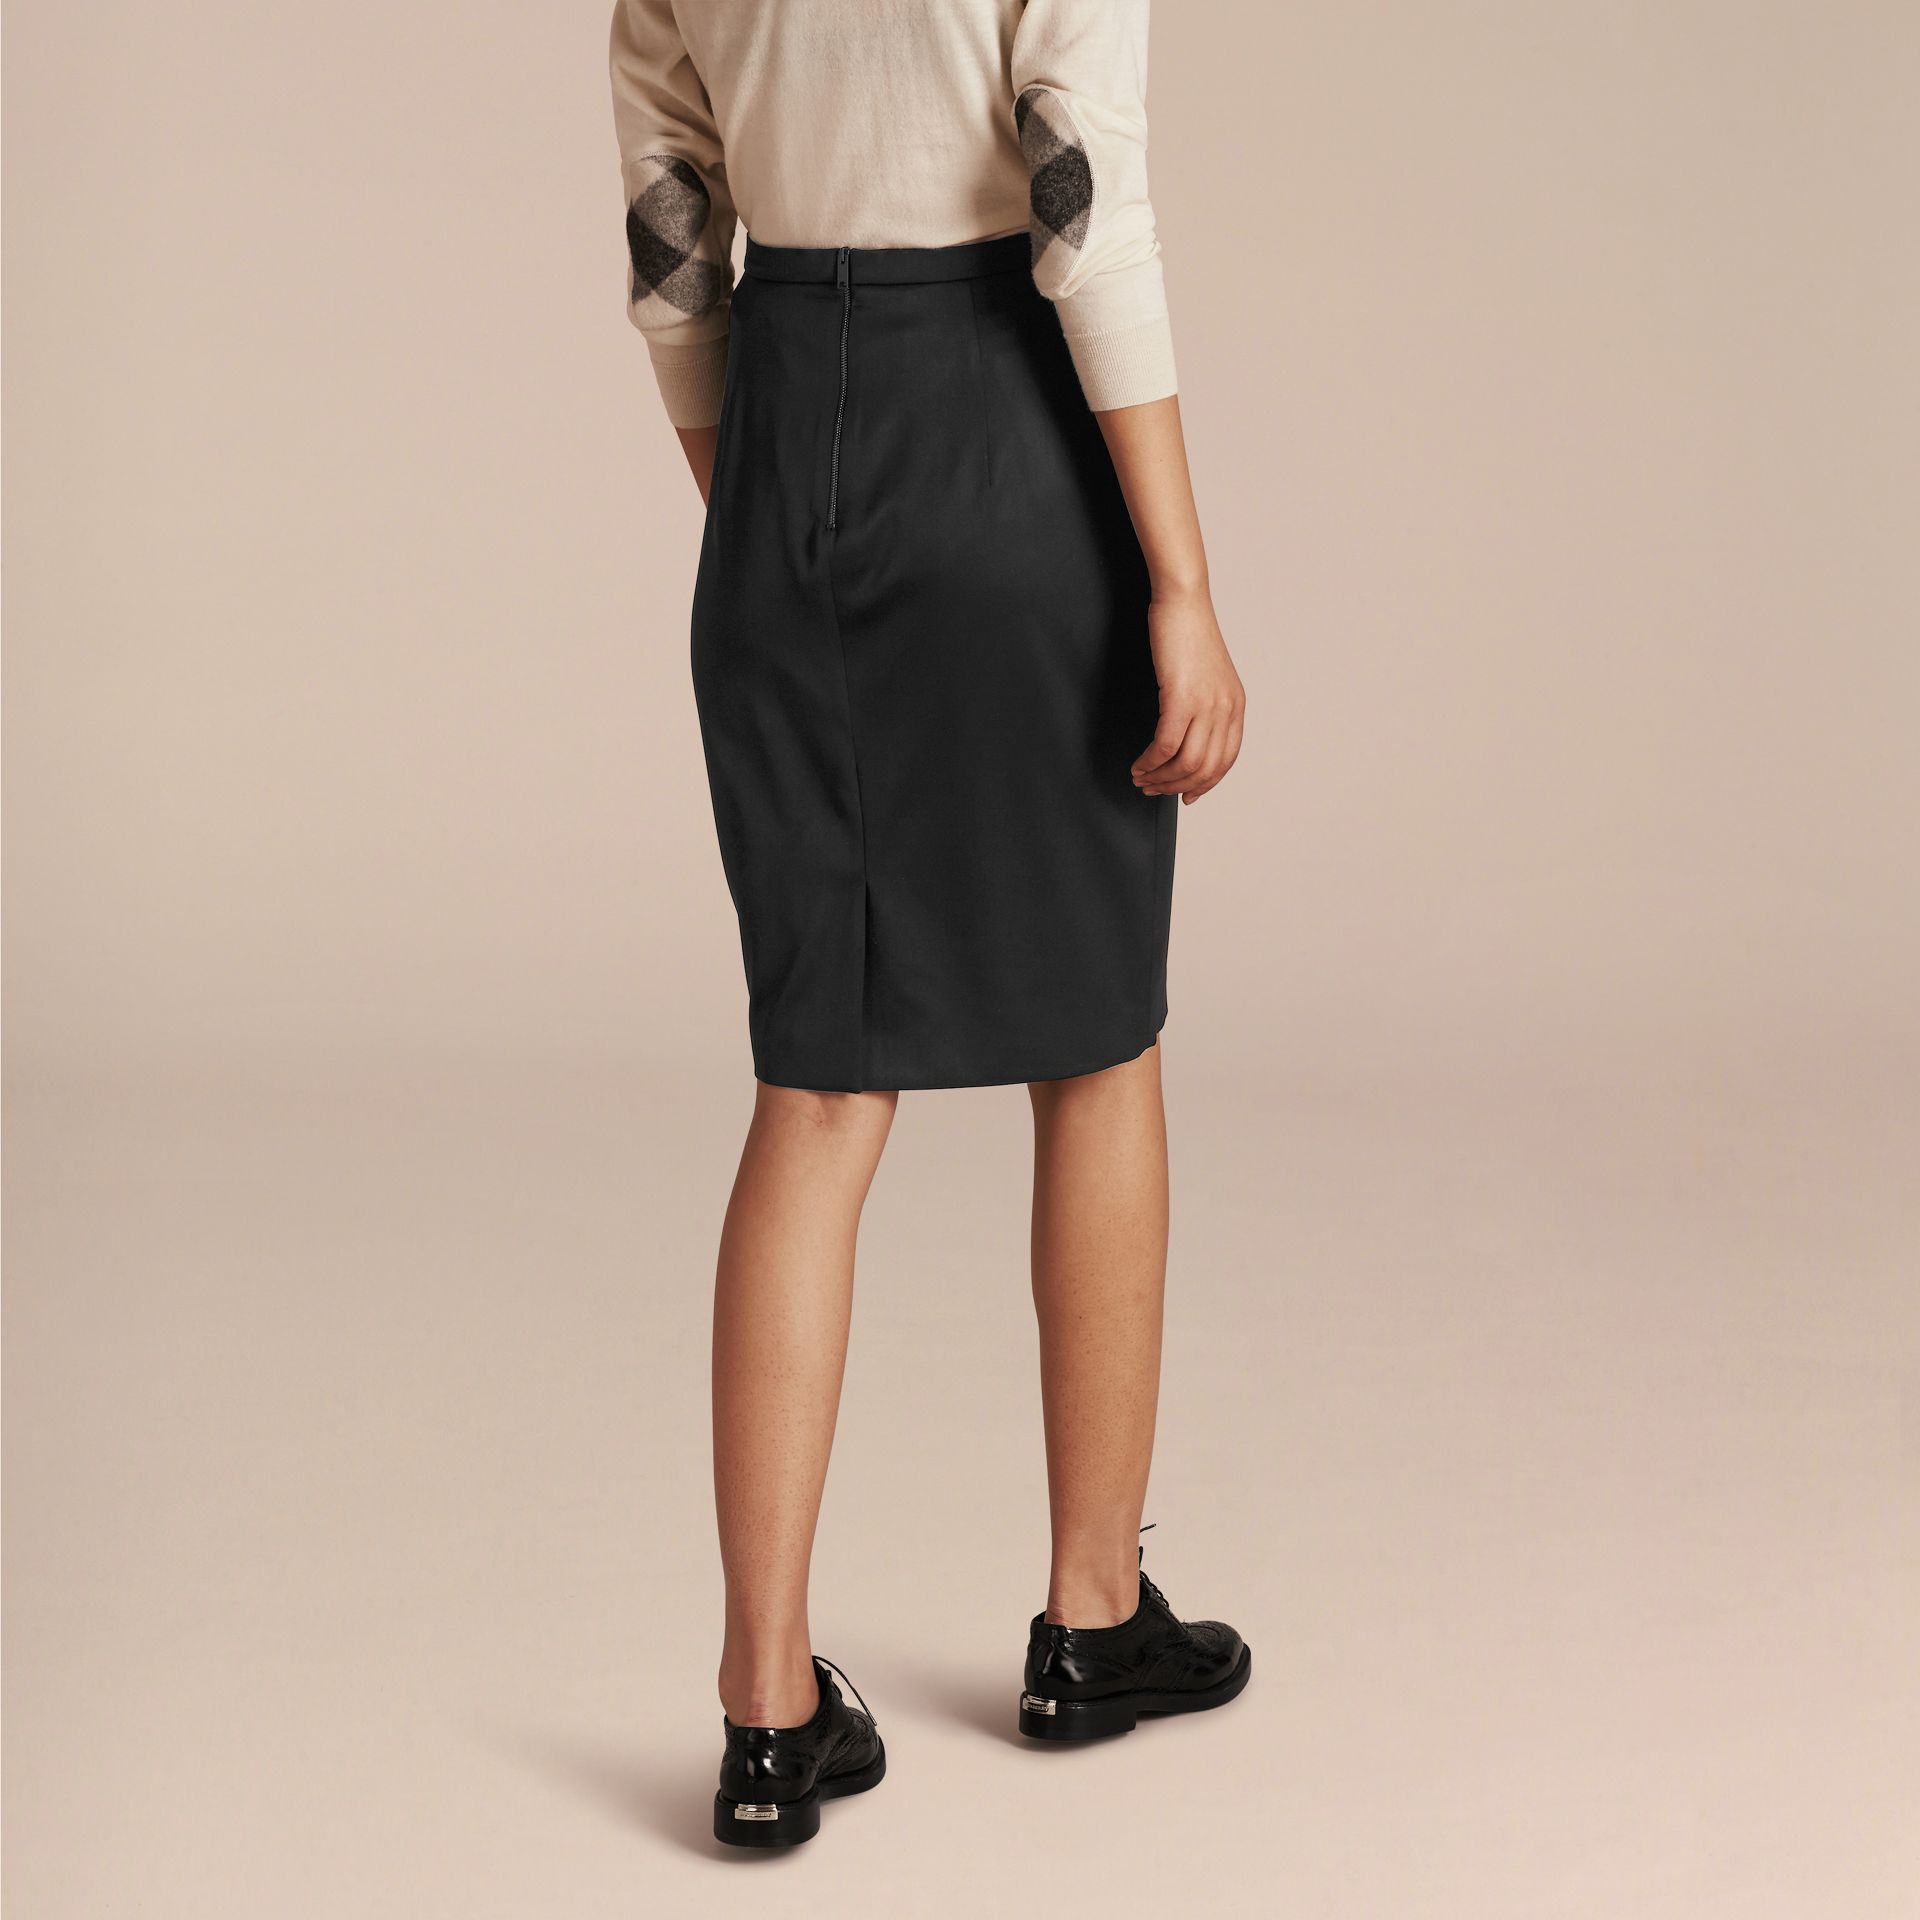 Black Stretch Virgin Wool Tailored Pencil Skirt Black - gallery image 3